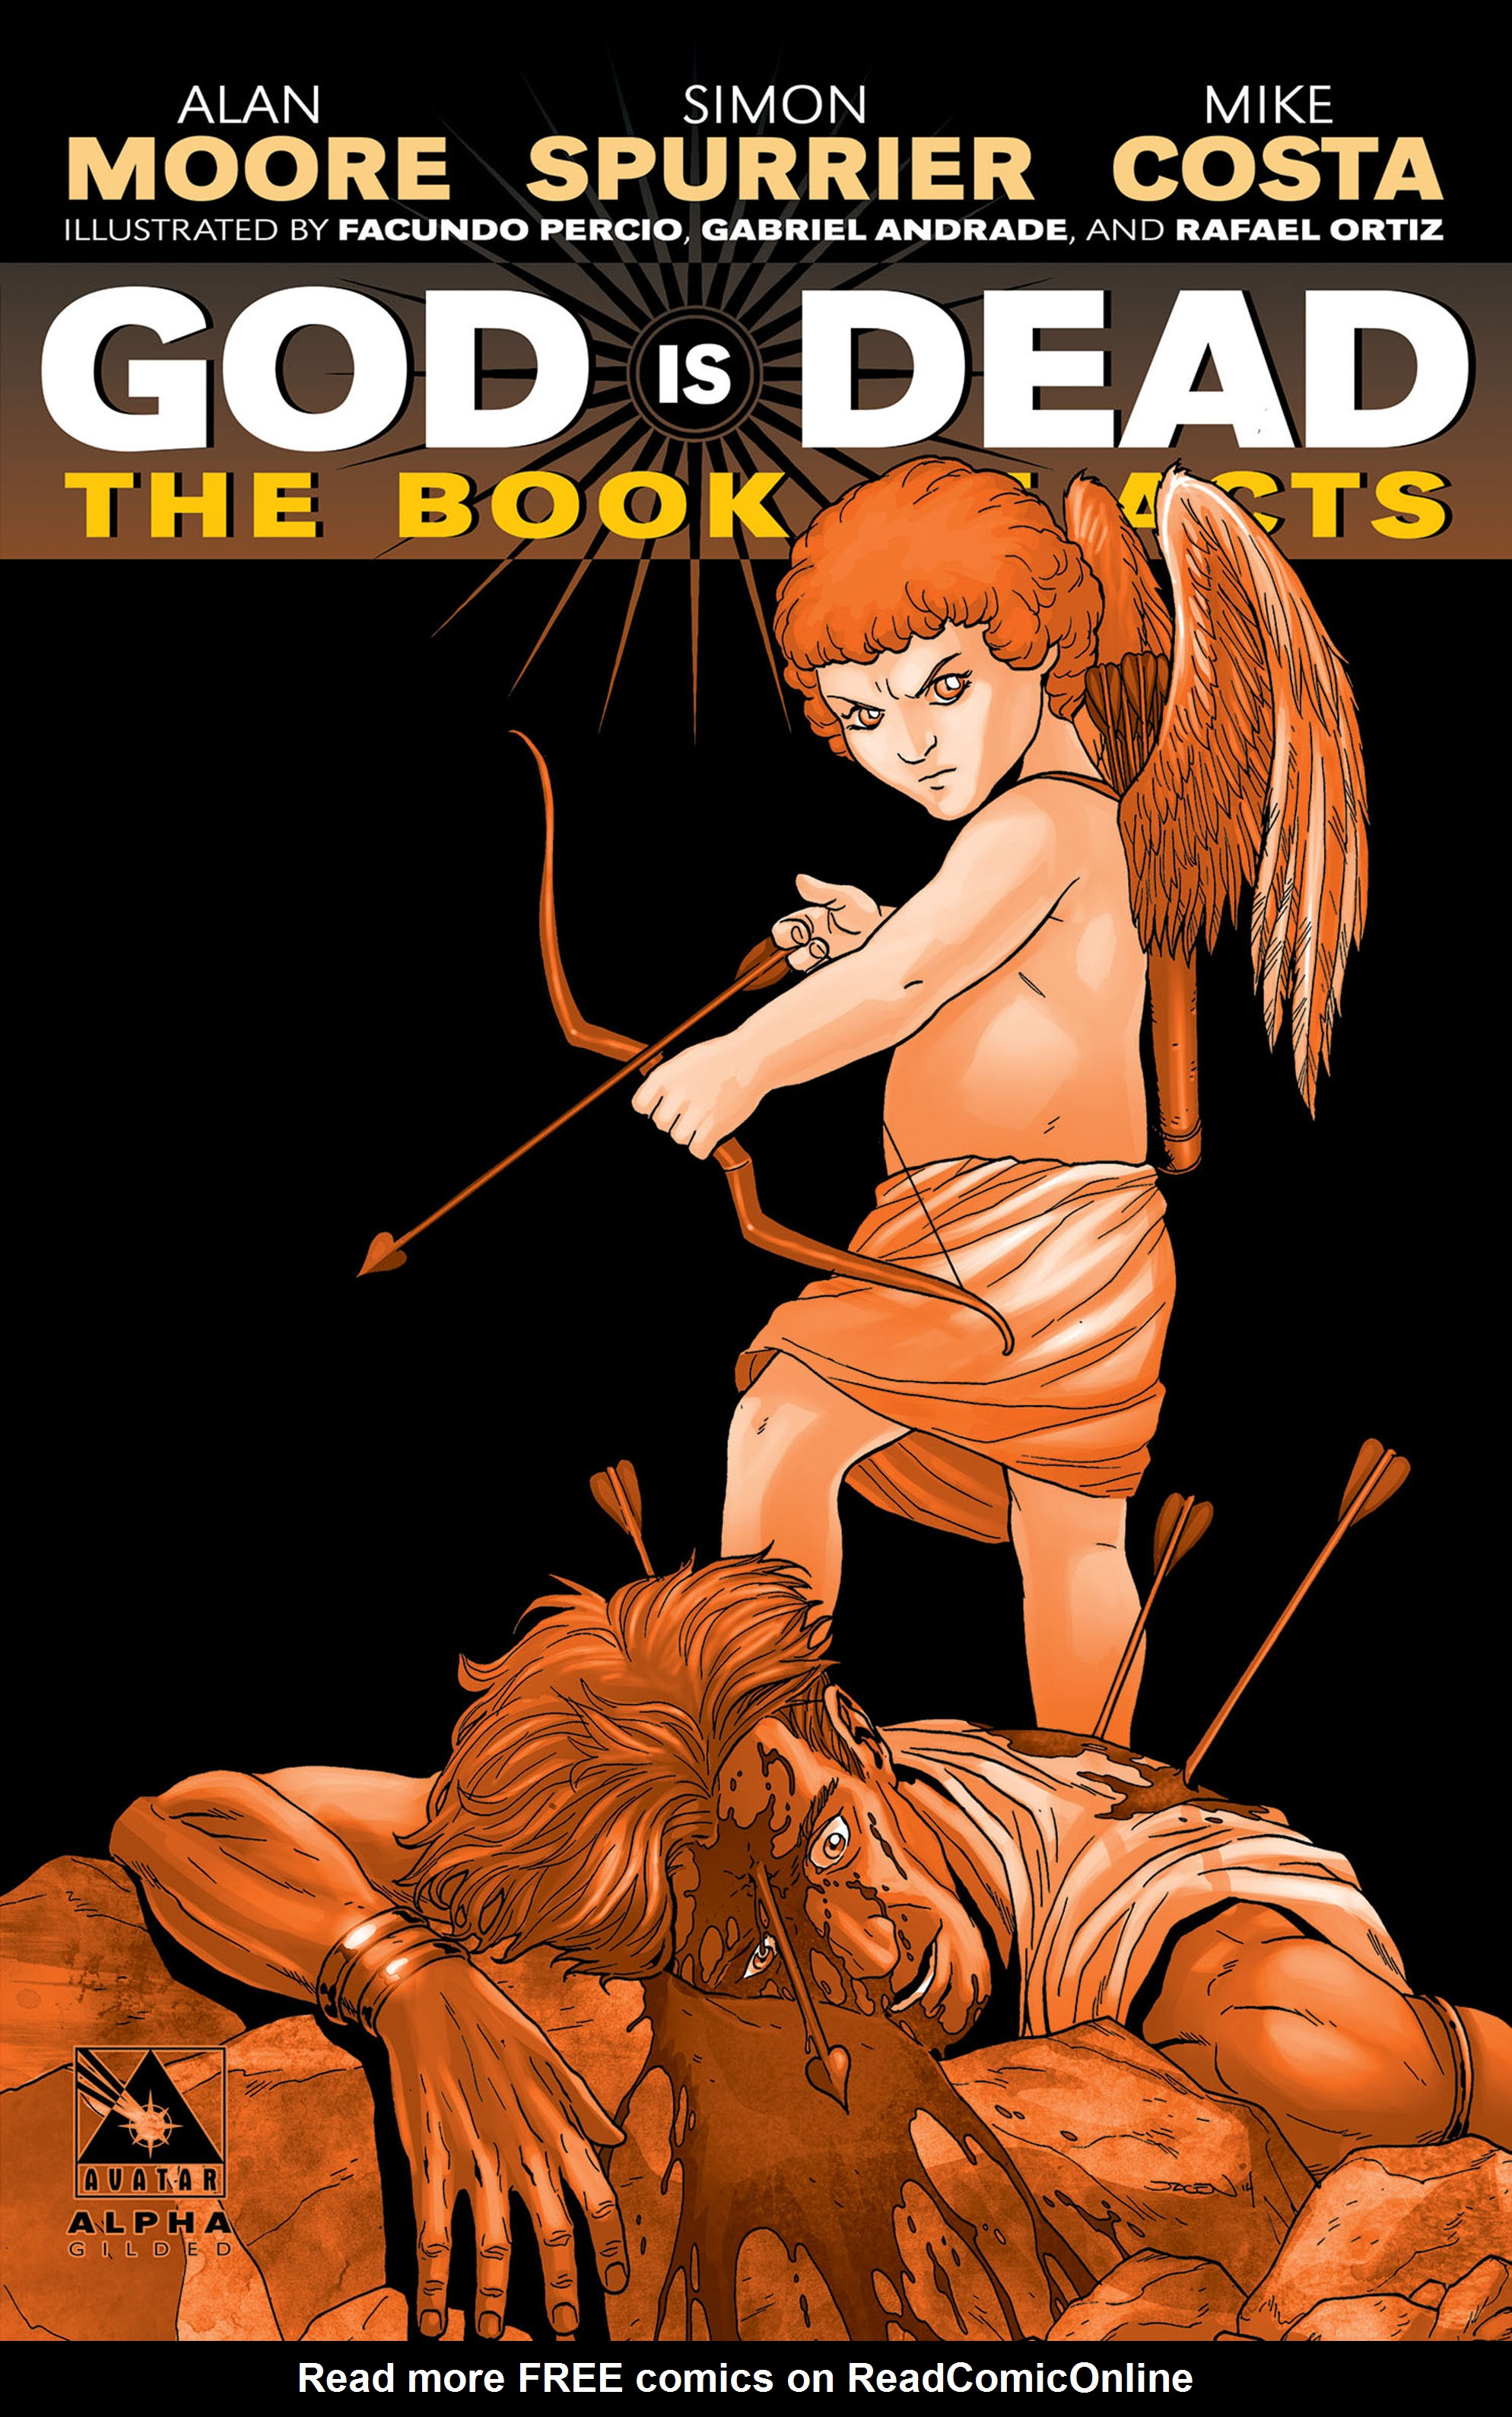 Read online God is Dead: Book of Acts comic -  Issue # Alpha - 4